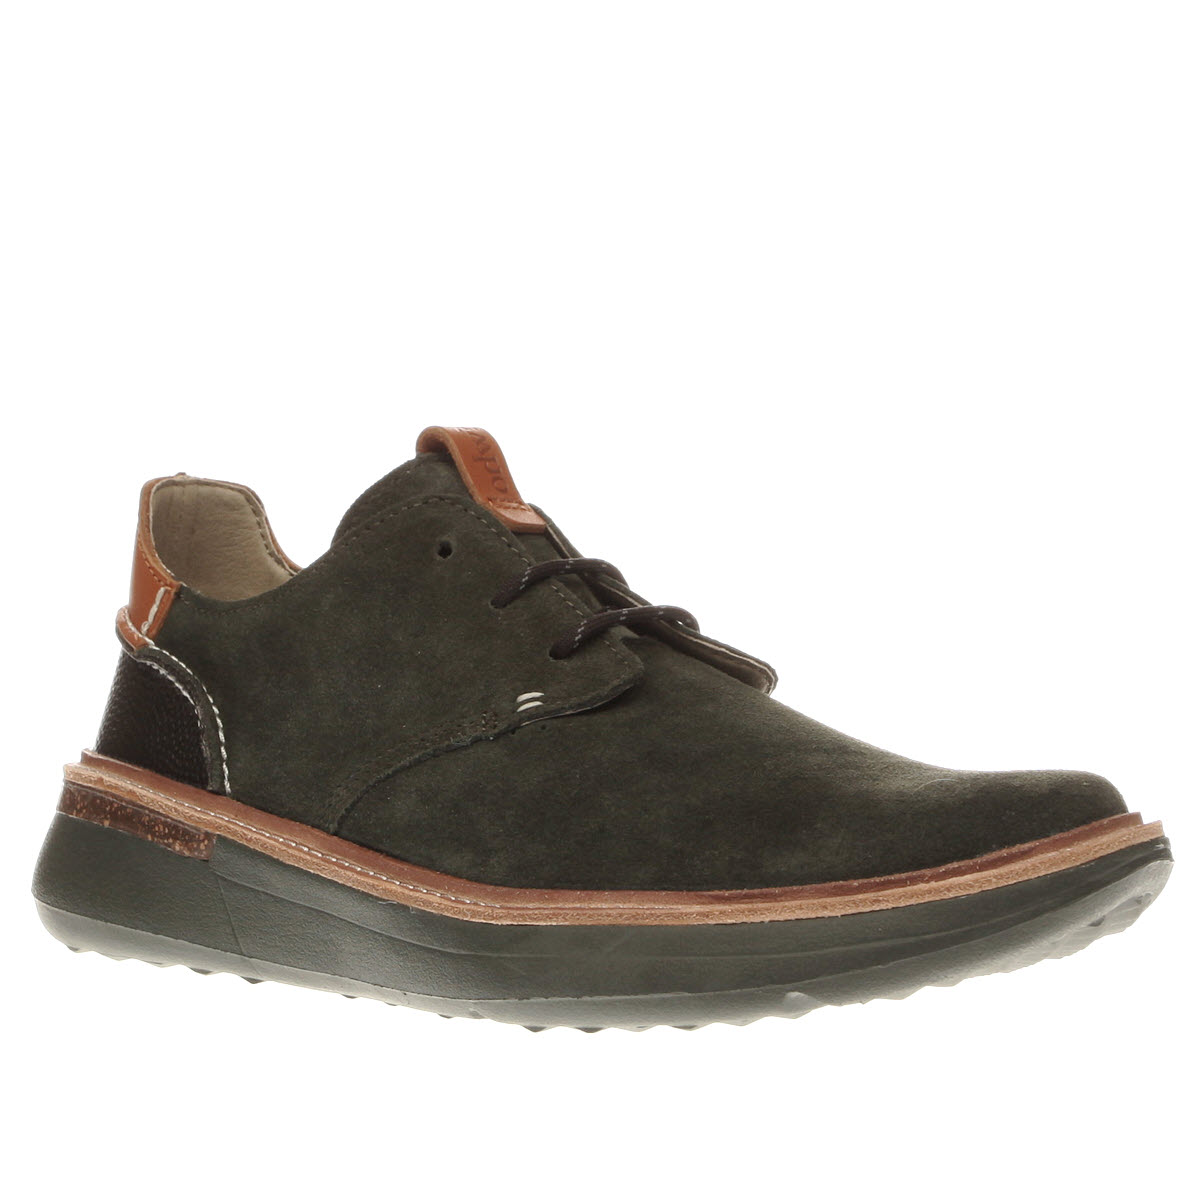 ohw? Ohw? Dark Green Ryder Mens Shoes